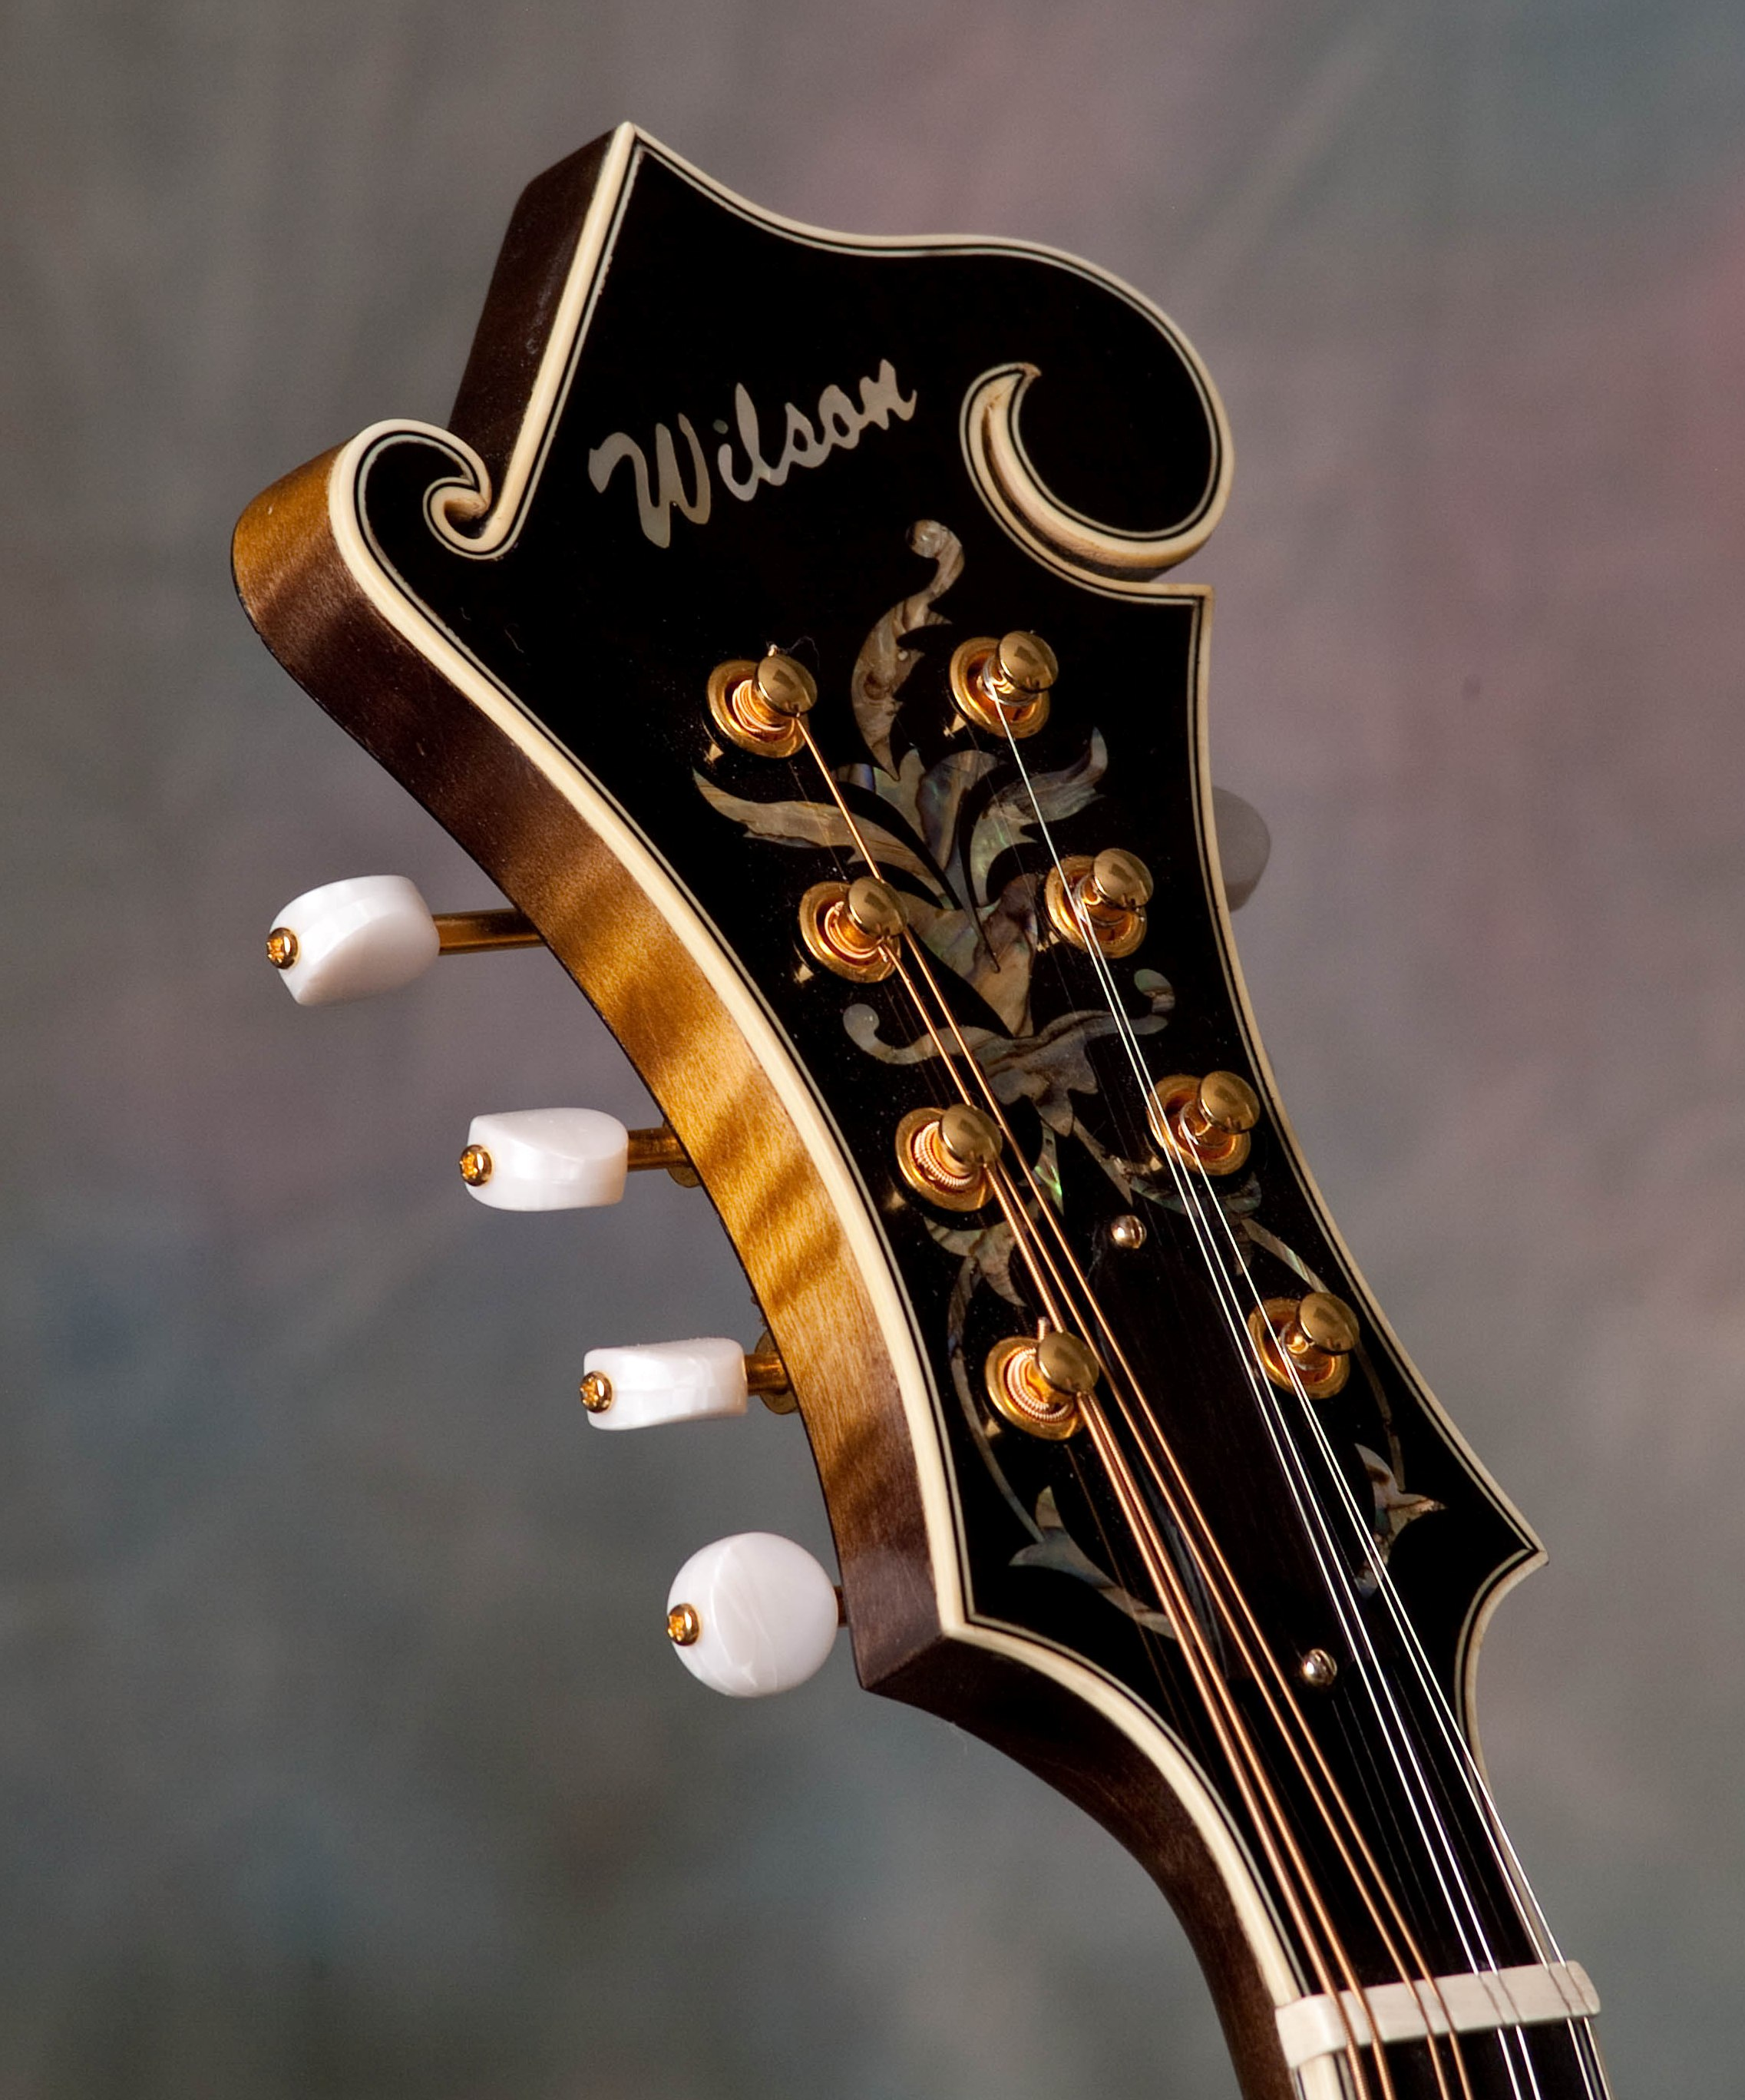 A Wilson WF-5 peghead, top bound with gold hardware, ivoroid buttons and fern inlays